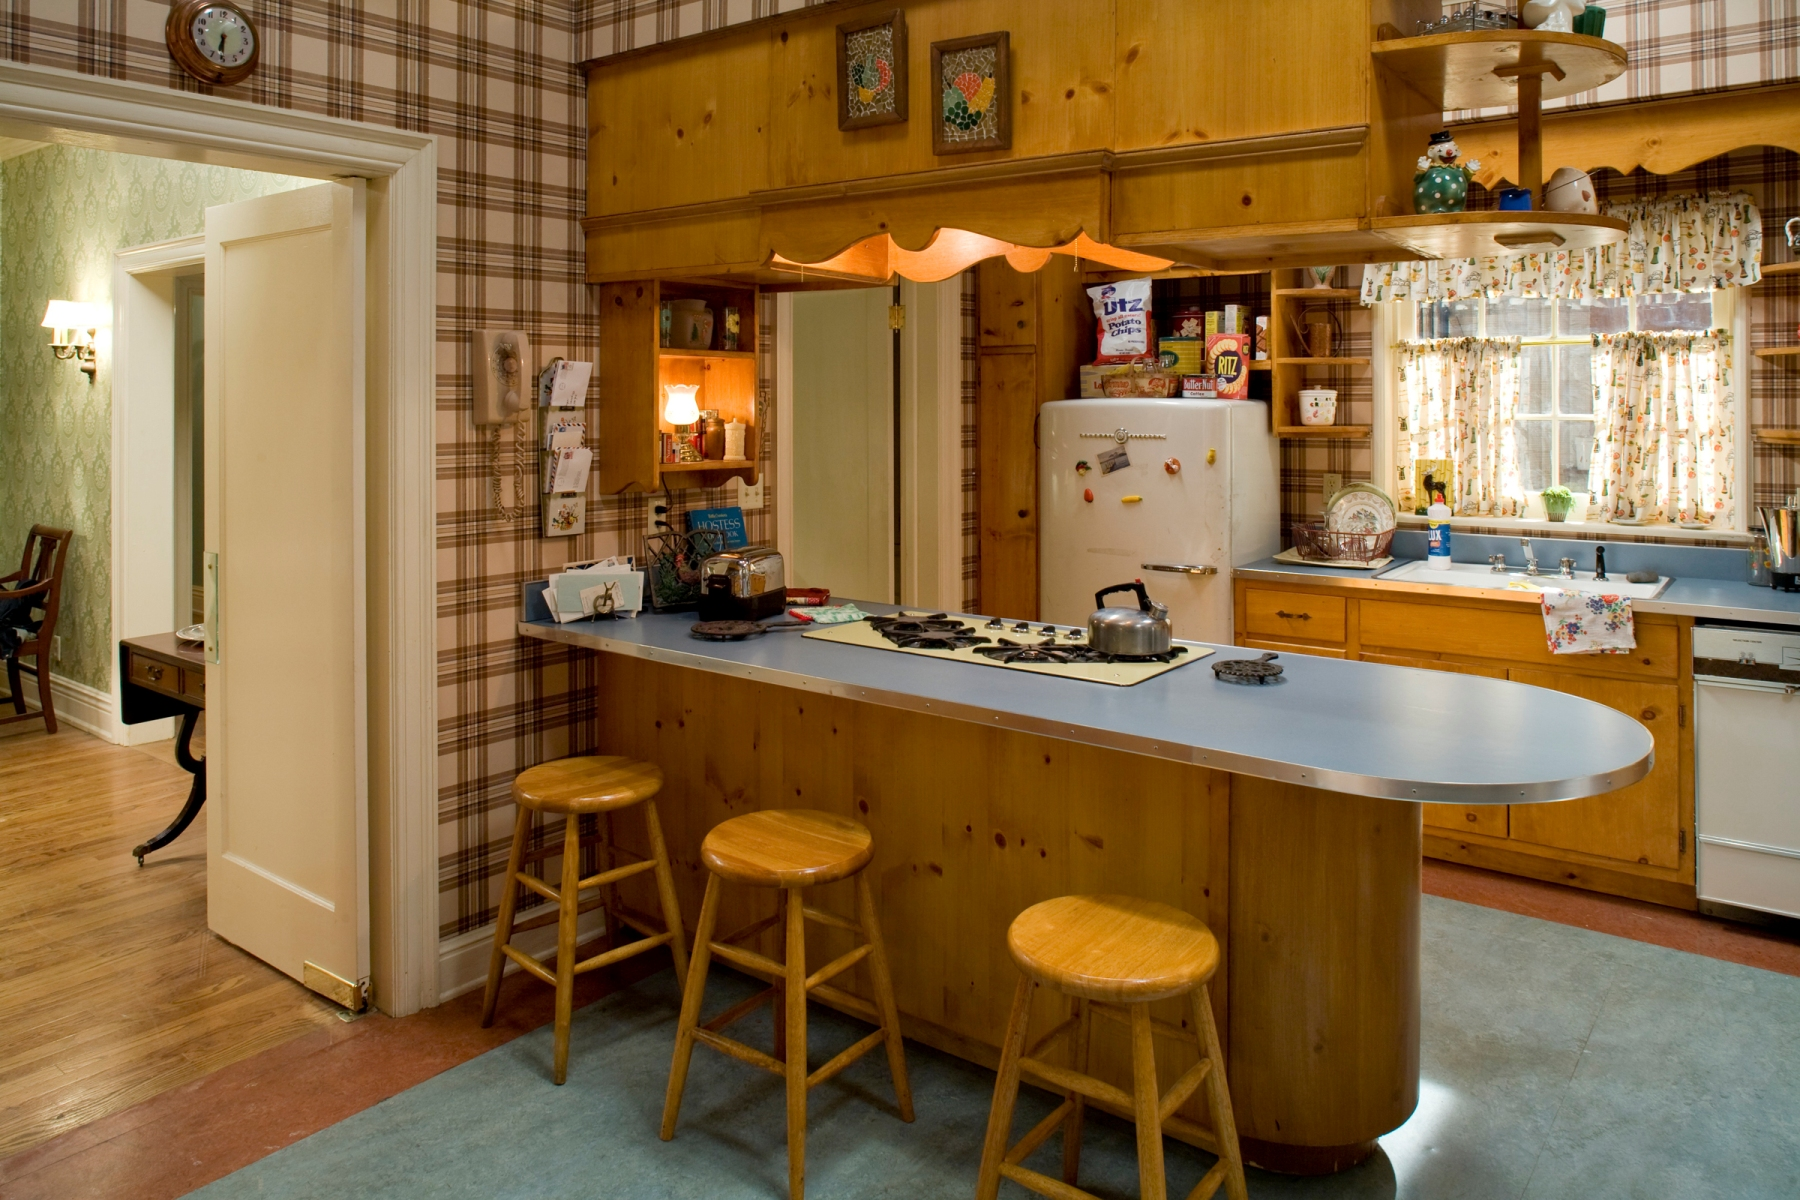 cheap stainless steel kitchen appliances walmart chairs classic television archives - the bowery boys: new york ...